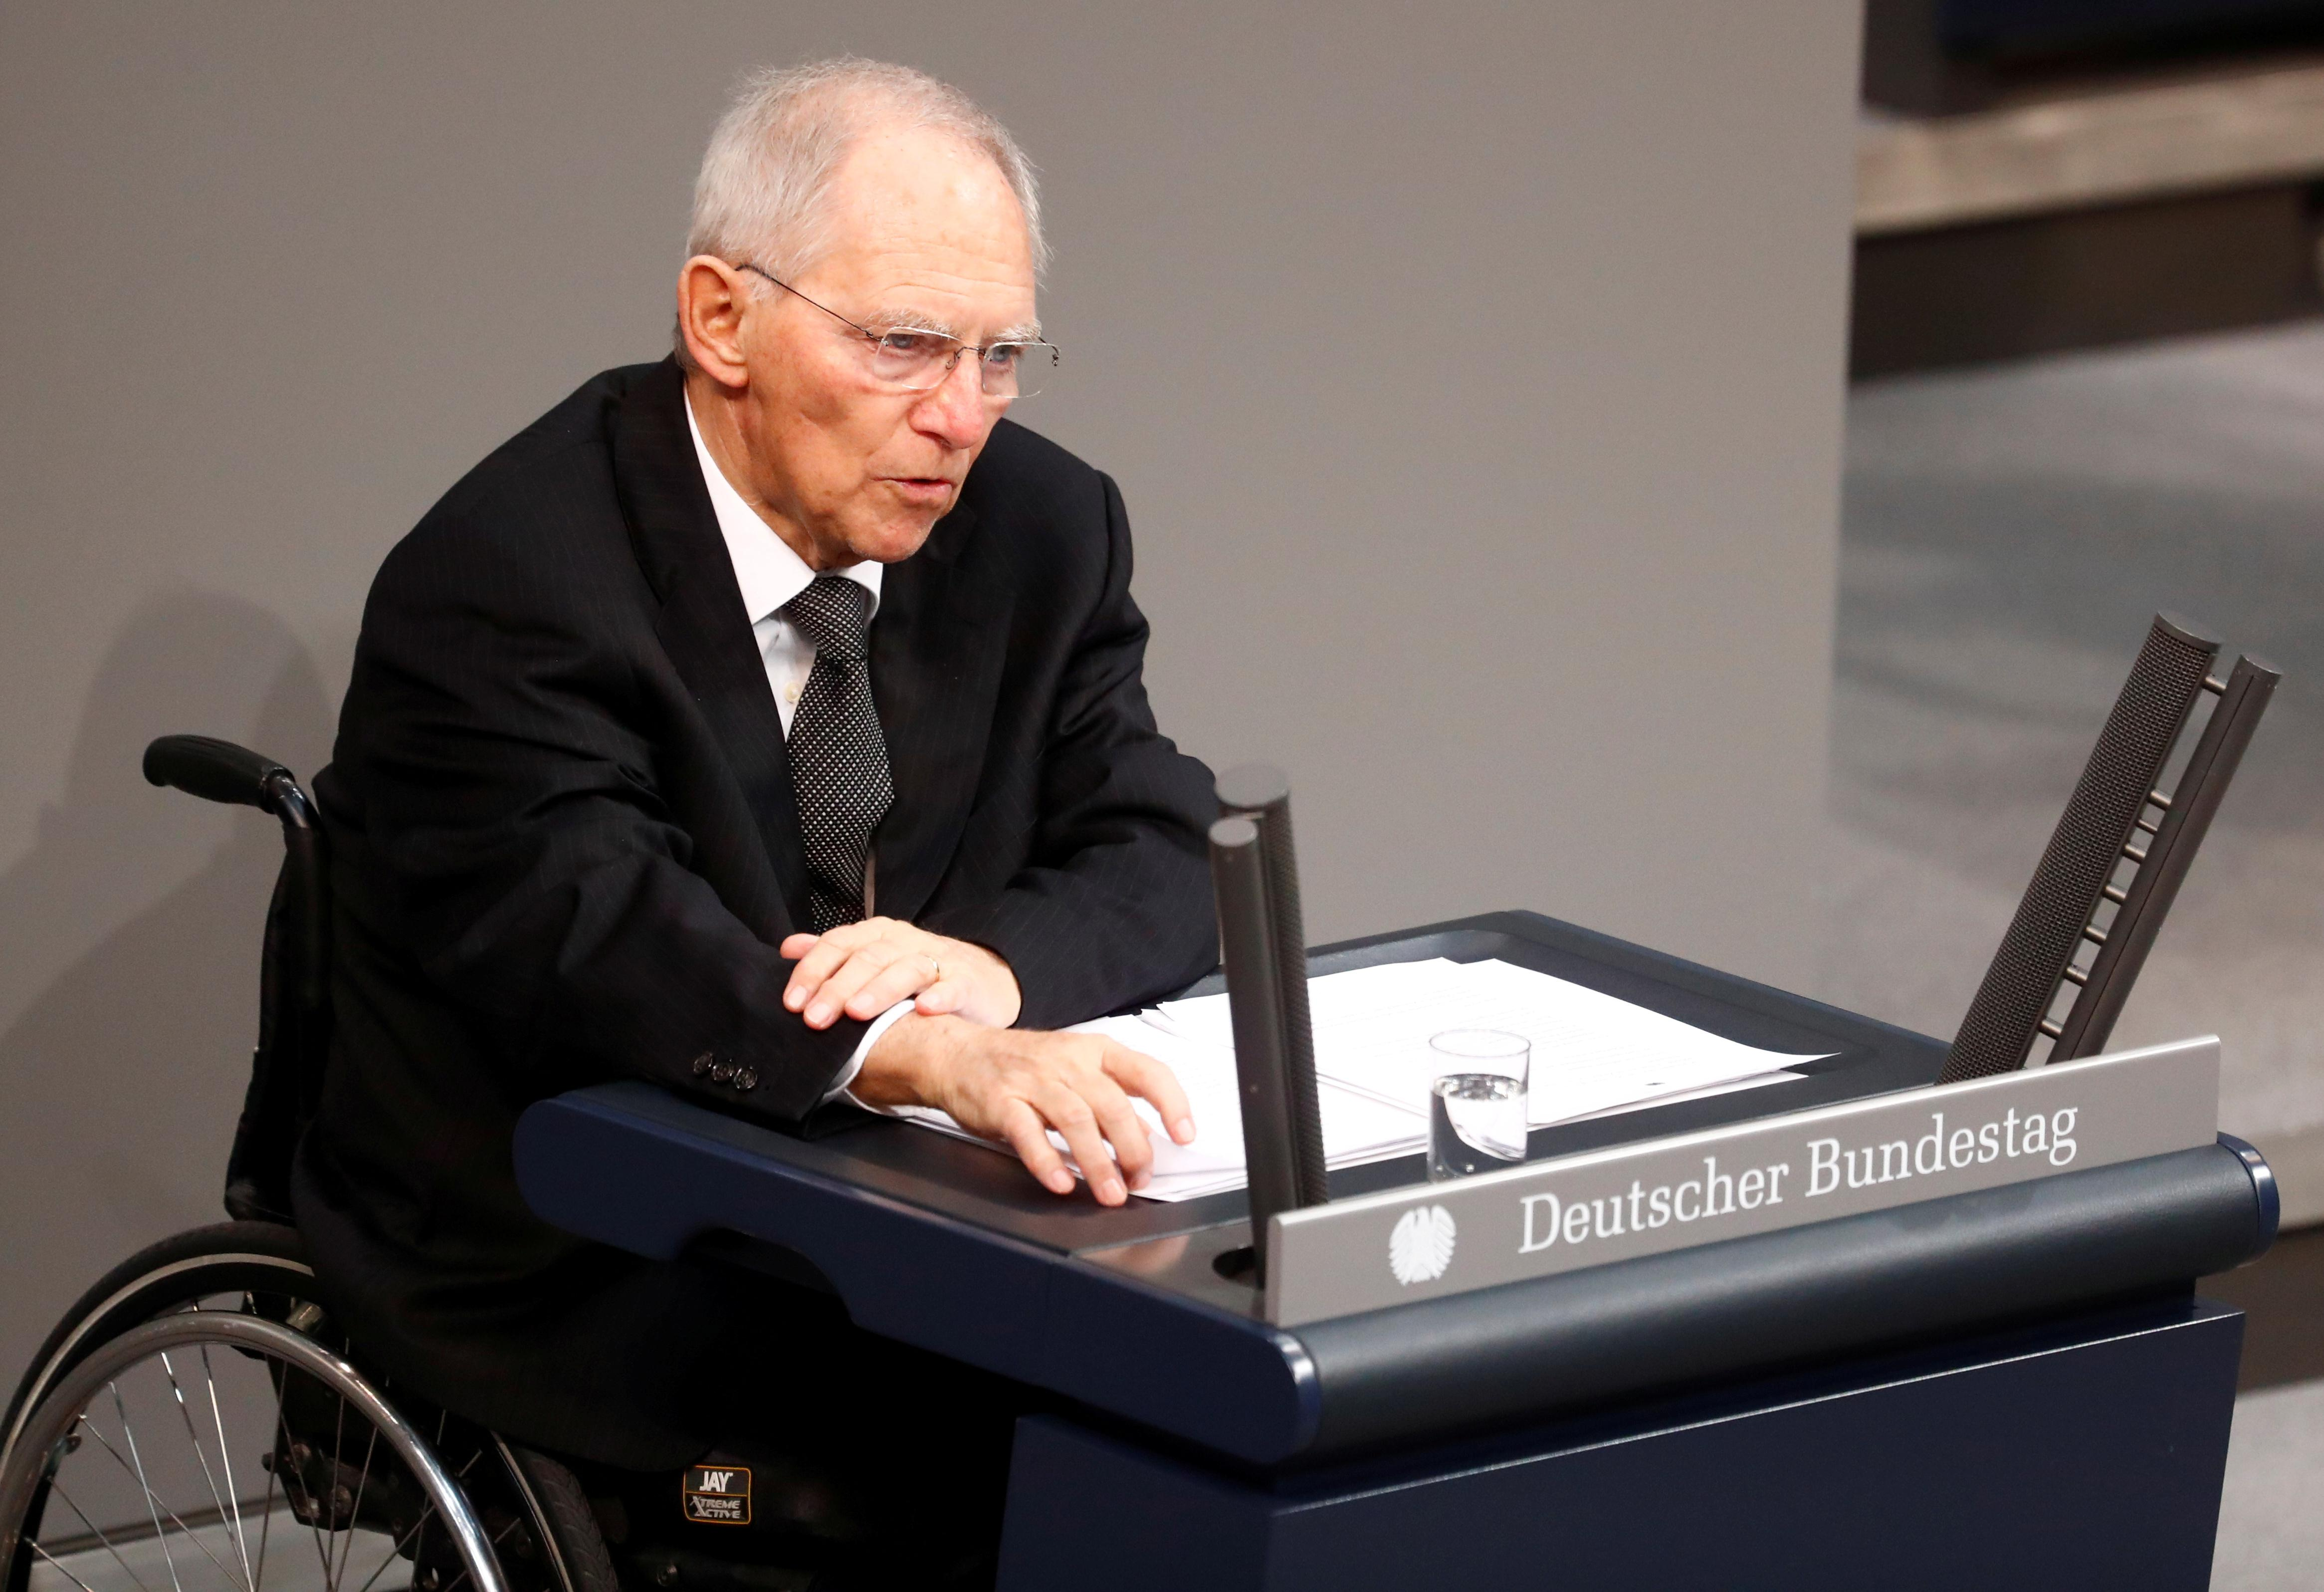 Merkel ally Schaeuble says her CDU could govern alone if SPD quits coalition